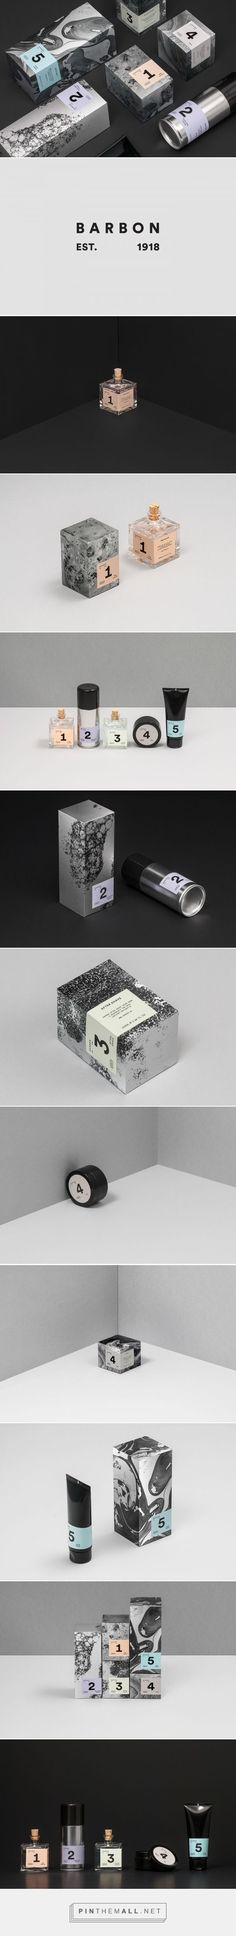 Barbon packaging on Behance by Peltan-Brosz Roland Budapest, Hungary curated by Packaging Diva PD. Barbon is Caola's range of products for men's shaving.